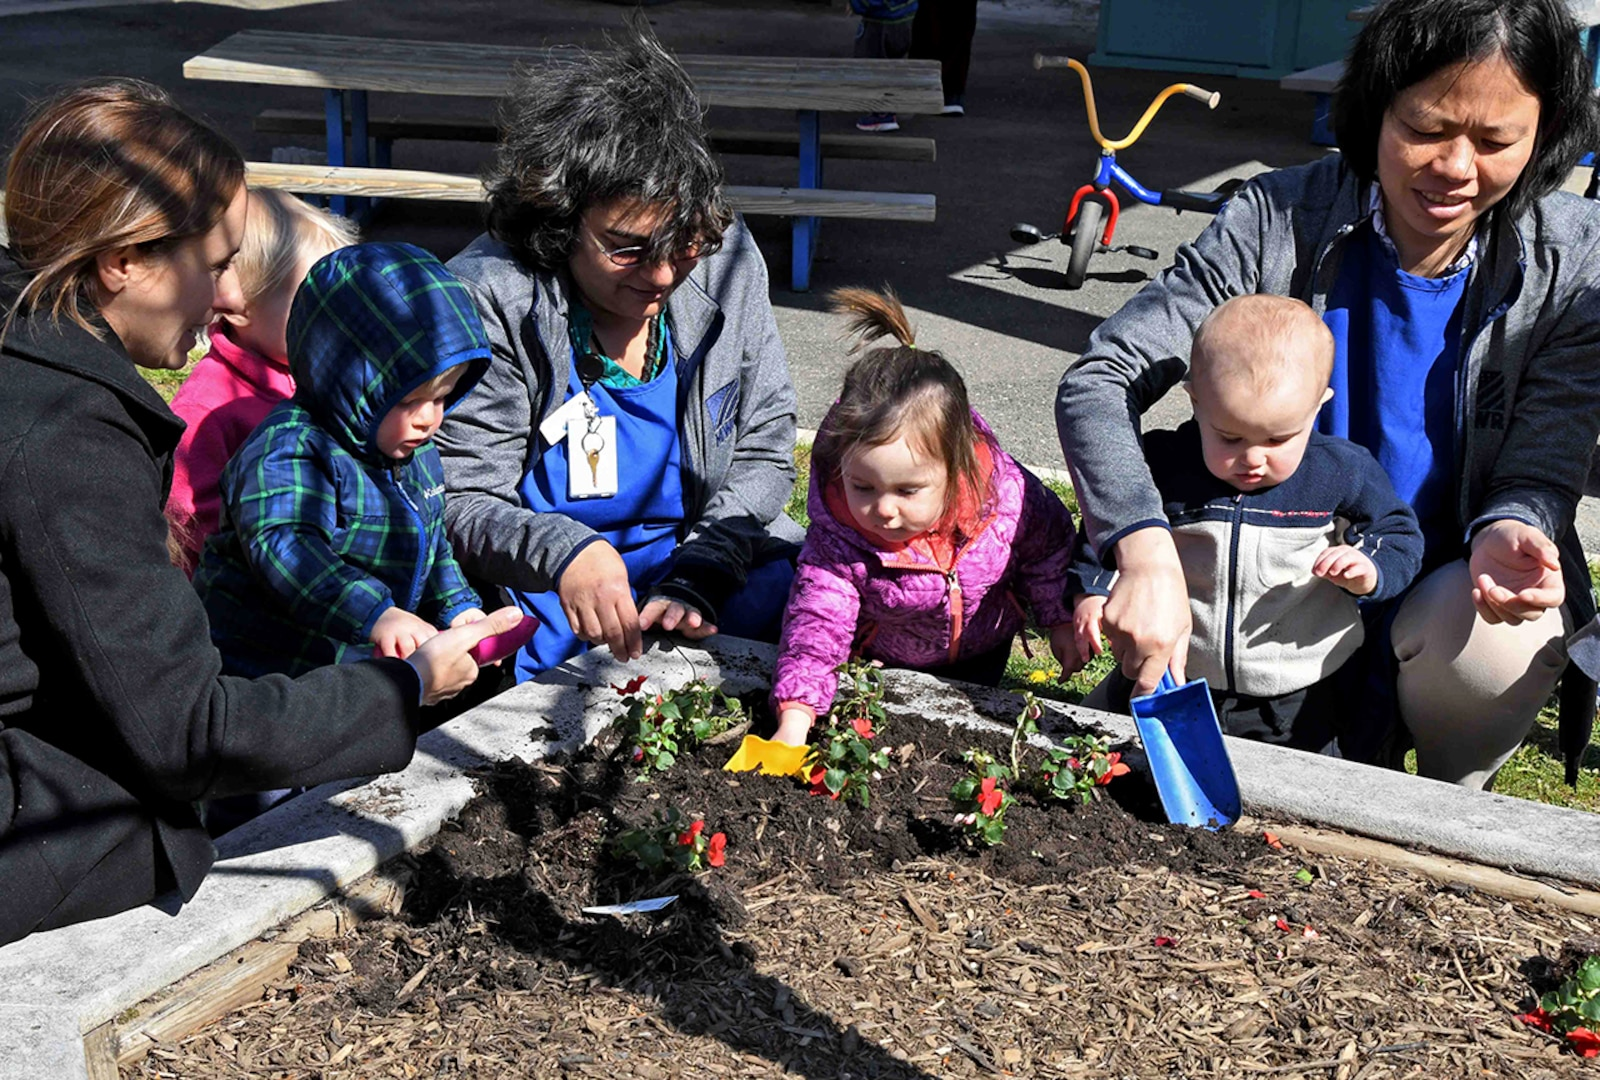 Child Development Center staff, parents and children plant flowers in honor of Earth Day in April 2018.